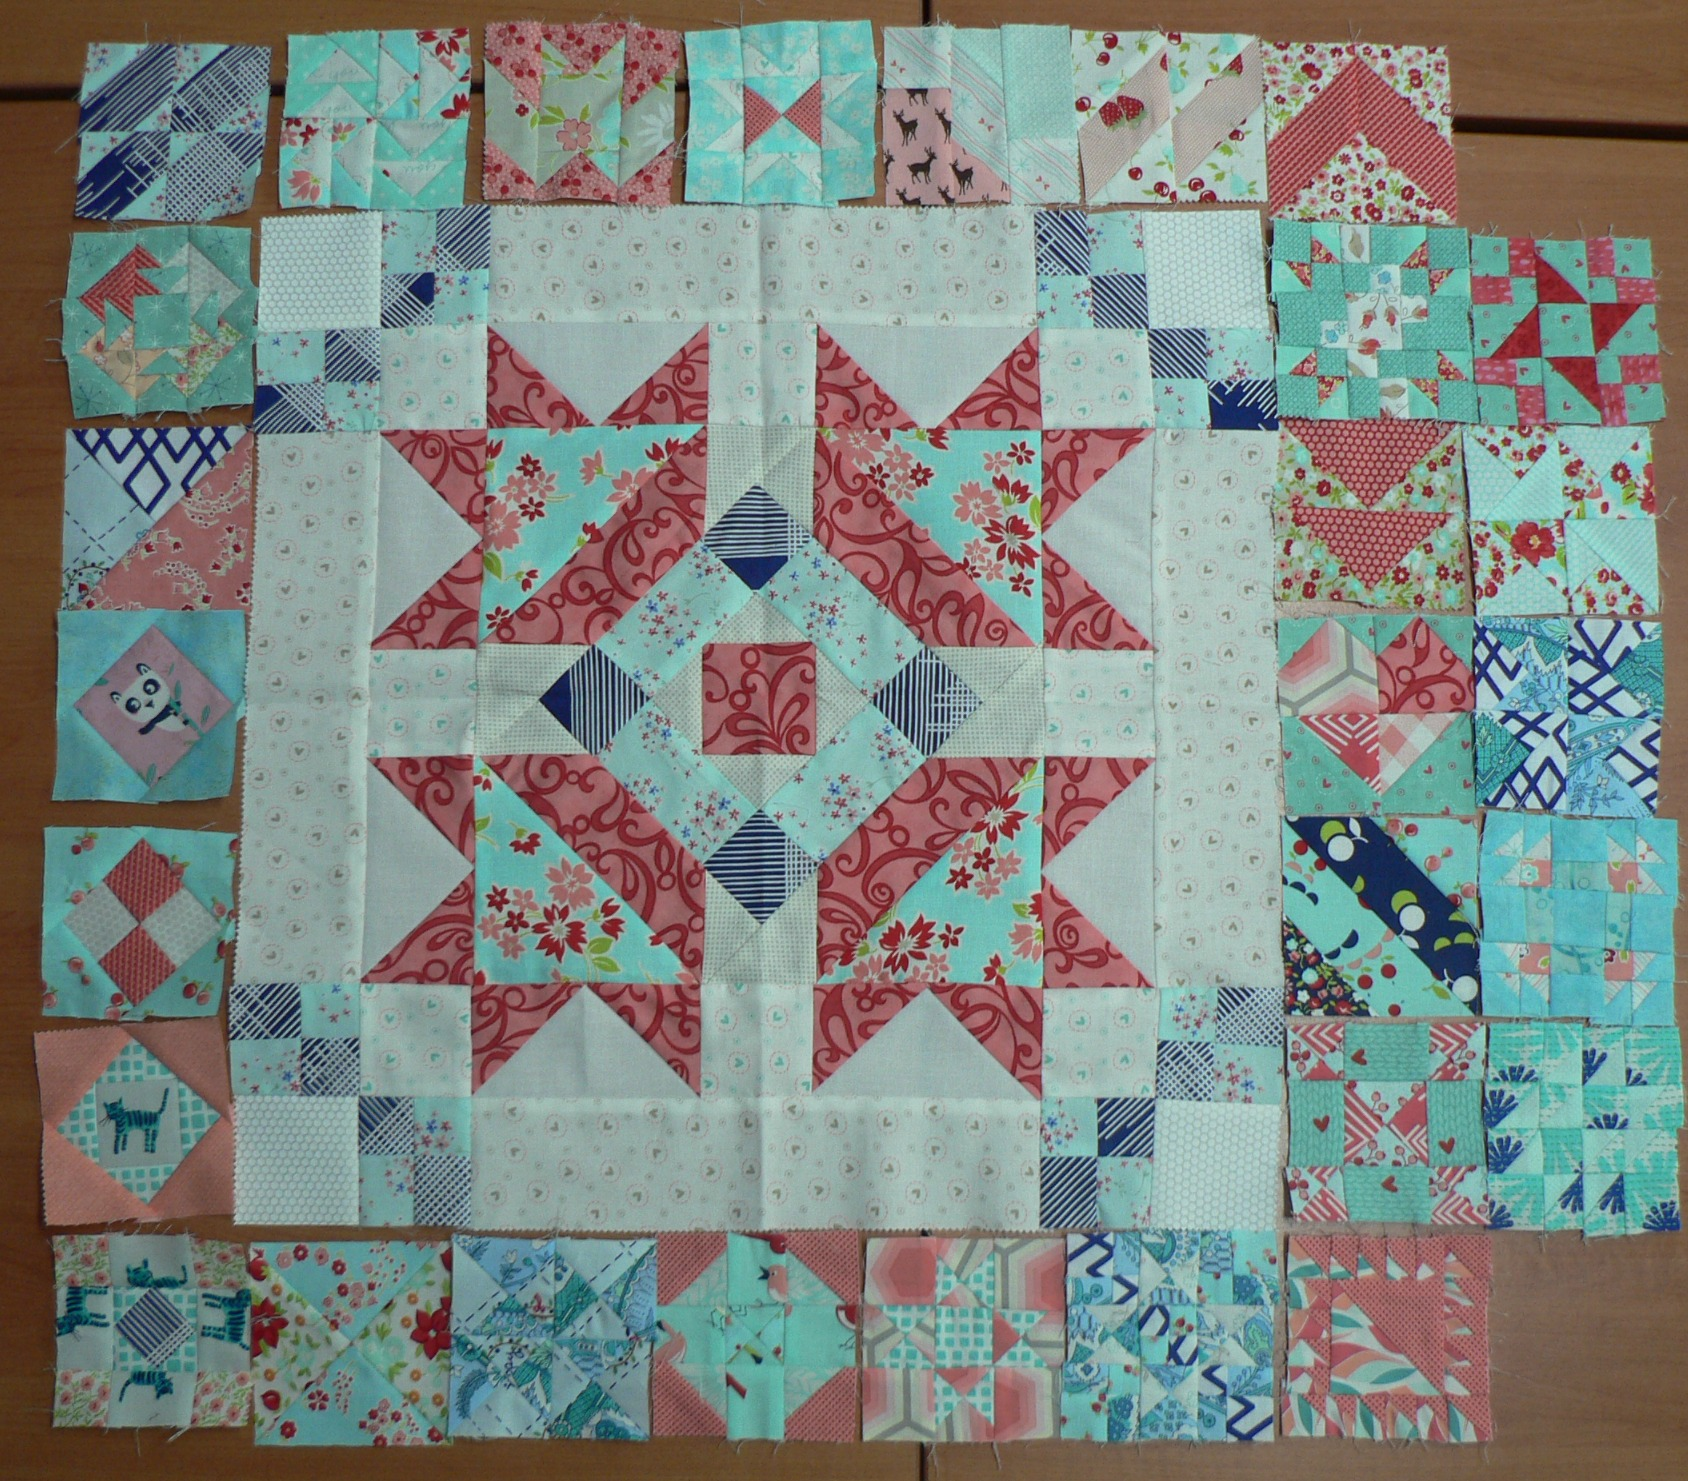 11 March 2016, newsletters, The Quilters Store and The ... : quilting stores brisbane - Adamdwight.com